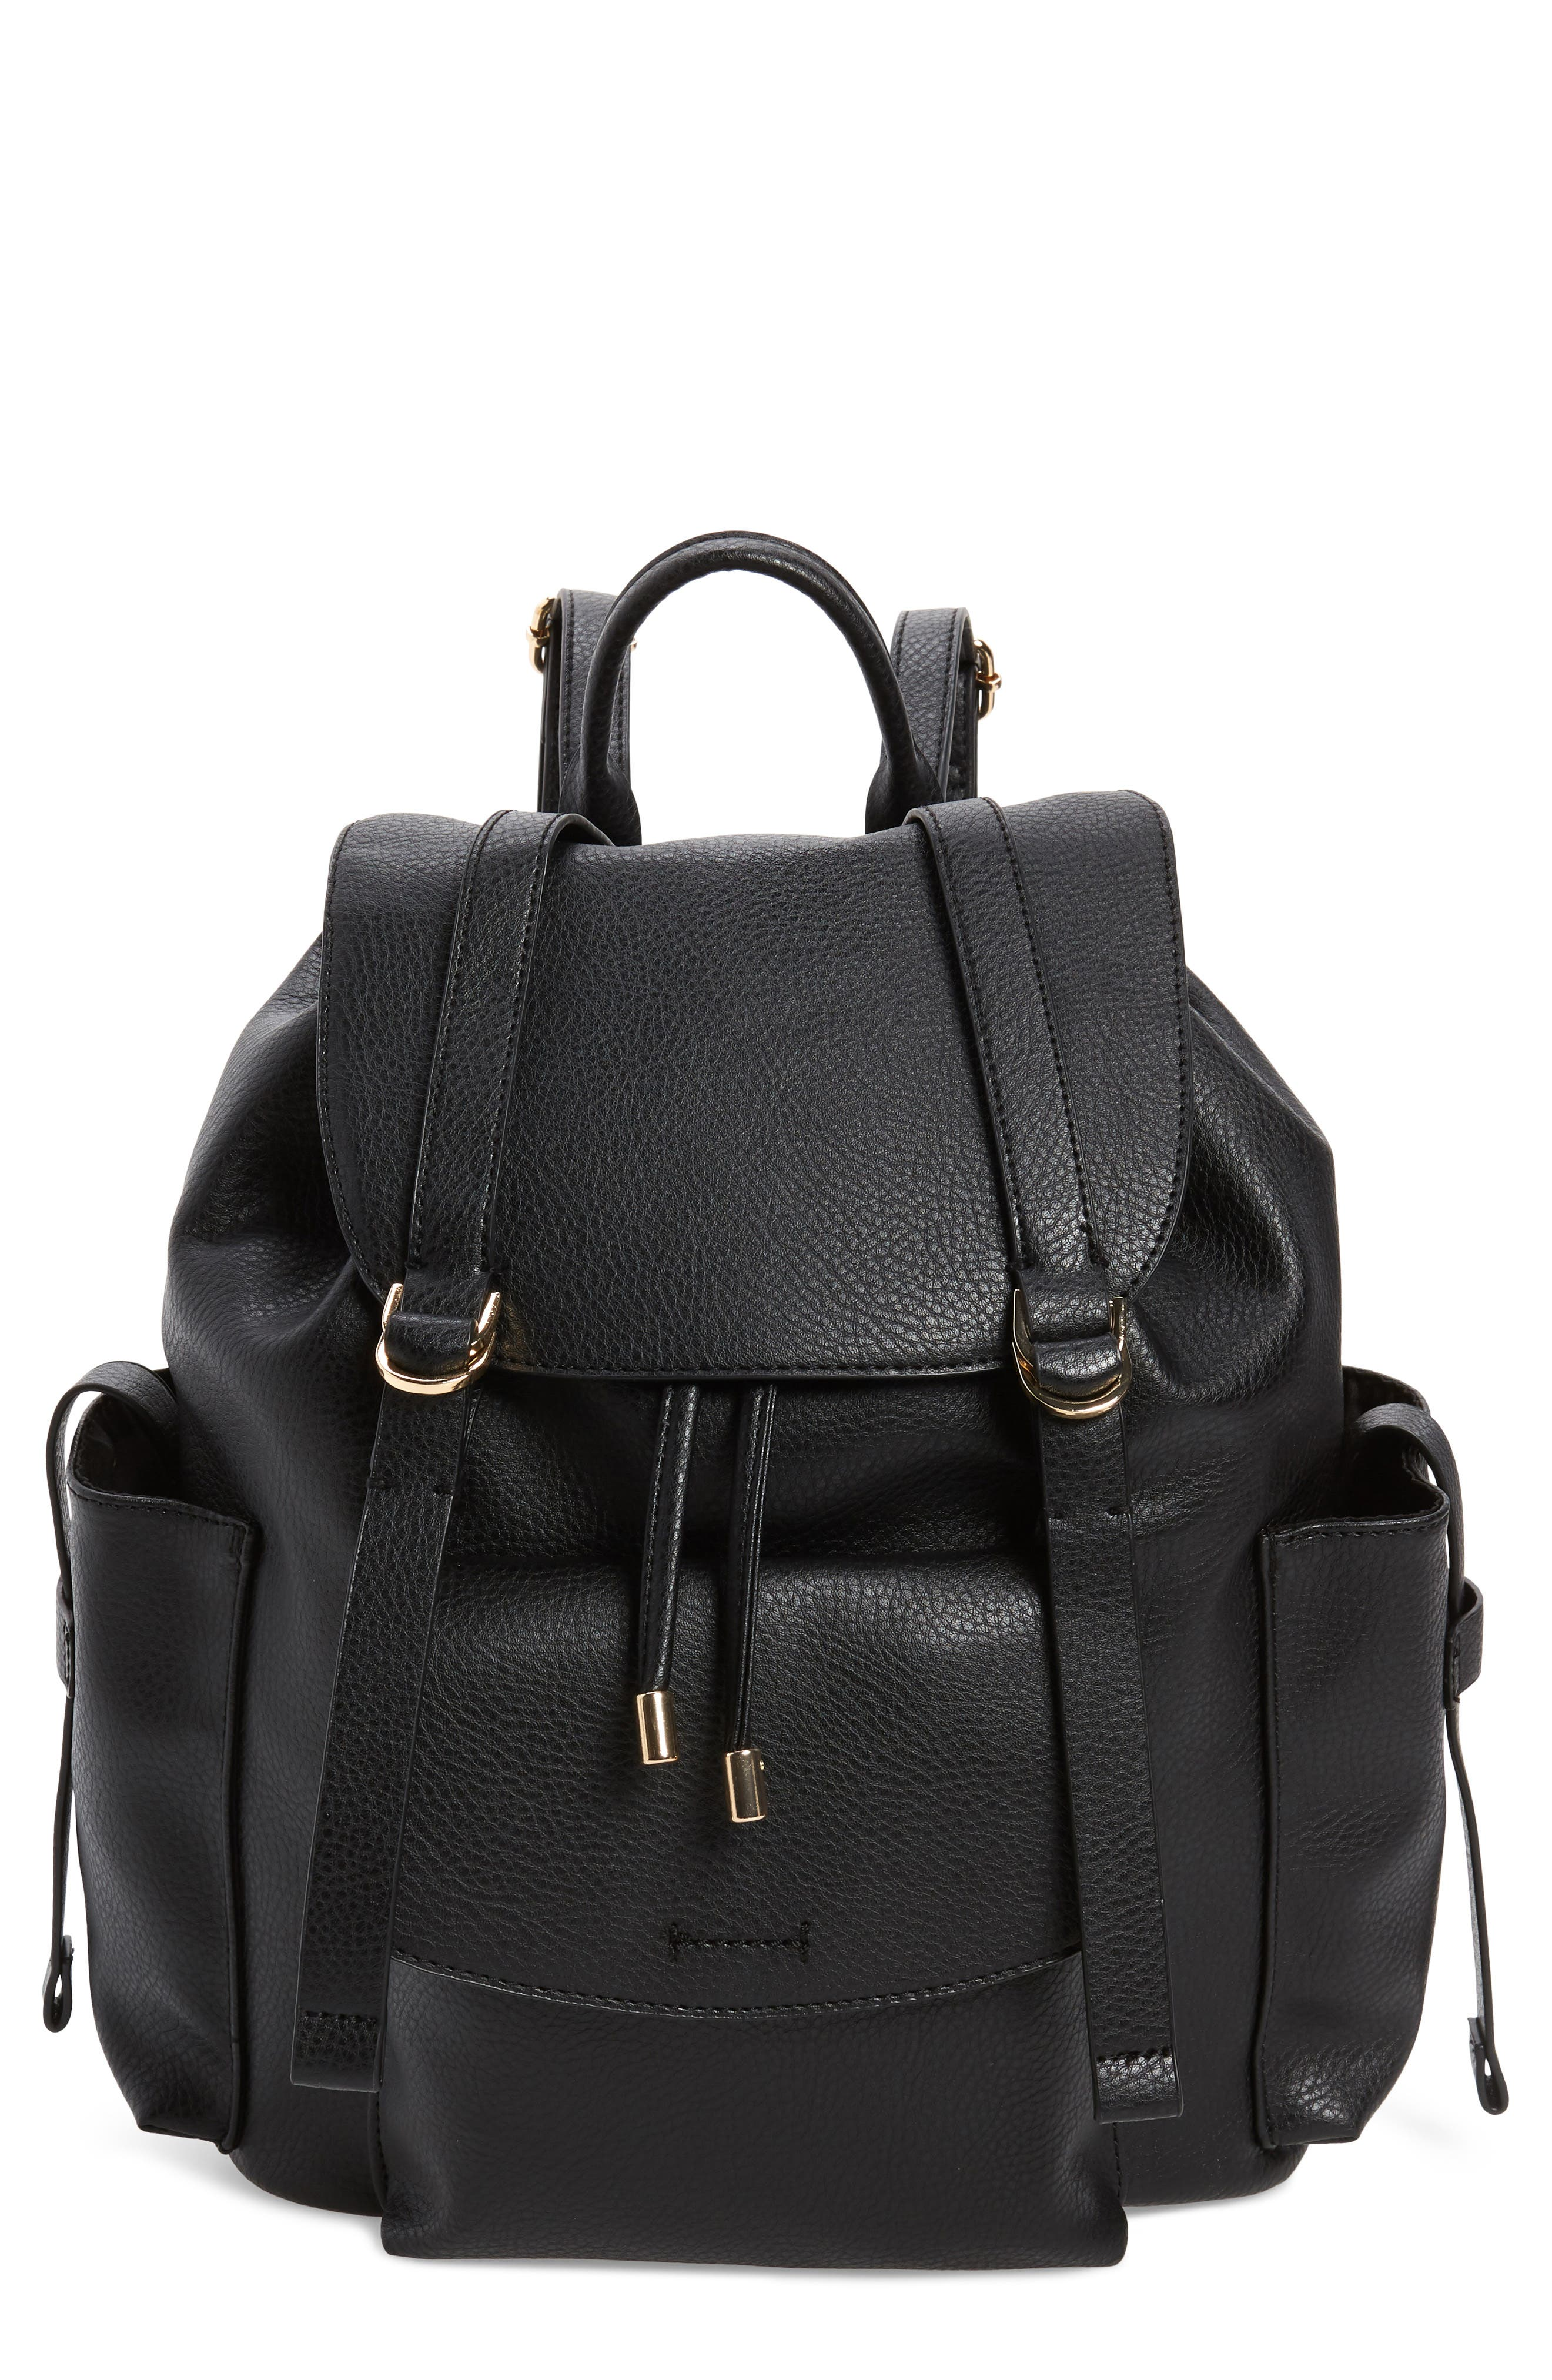 Topshop Becky Faux Leather Backpack - Black